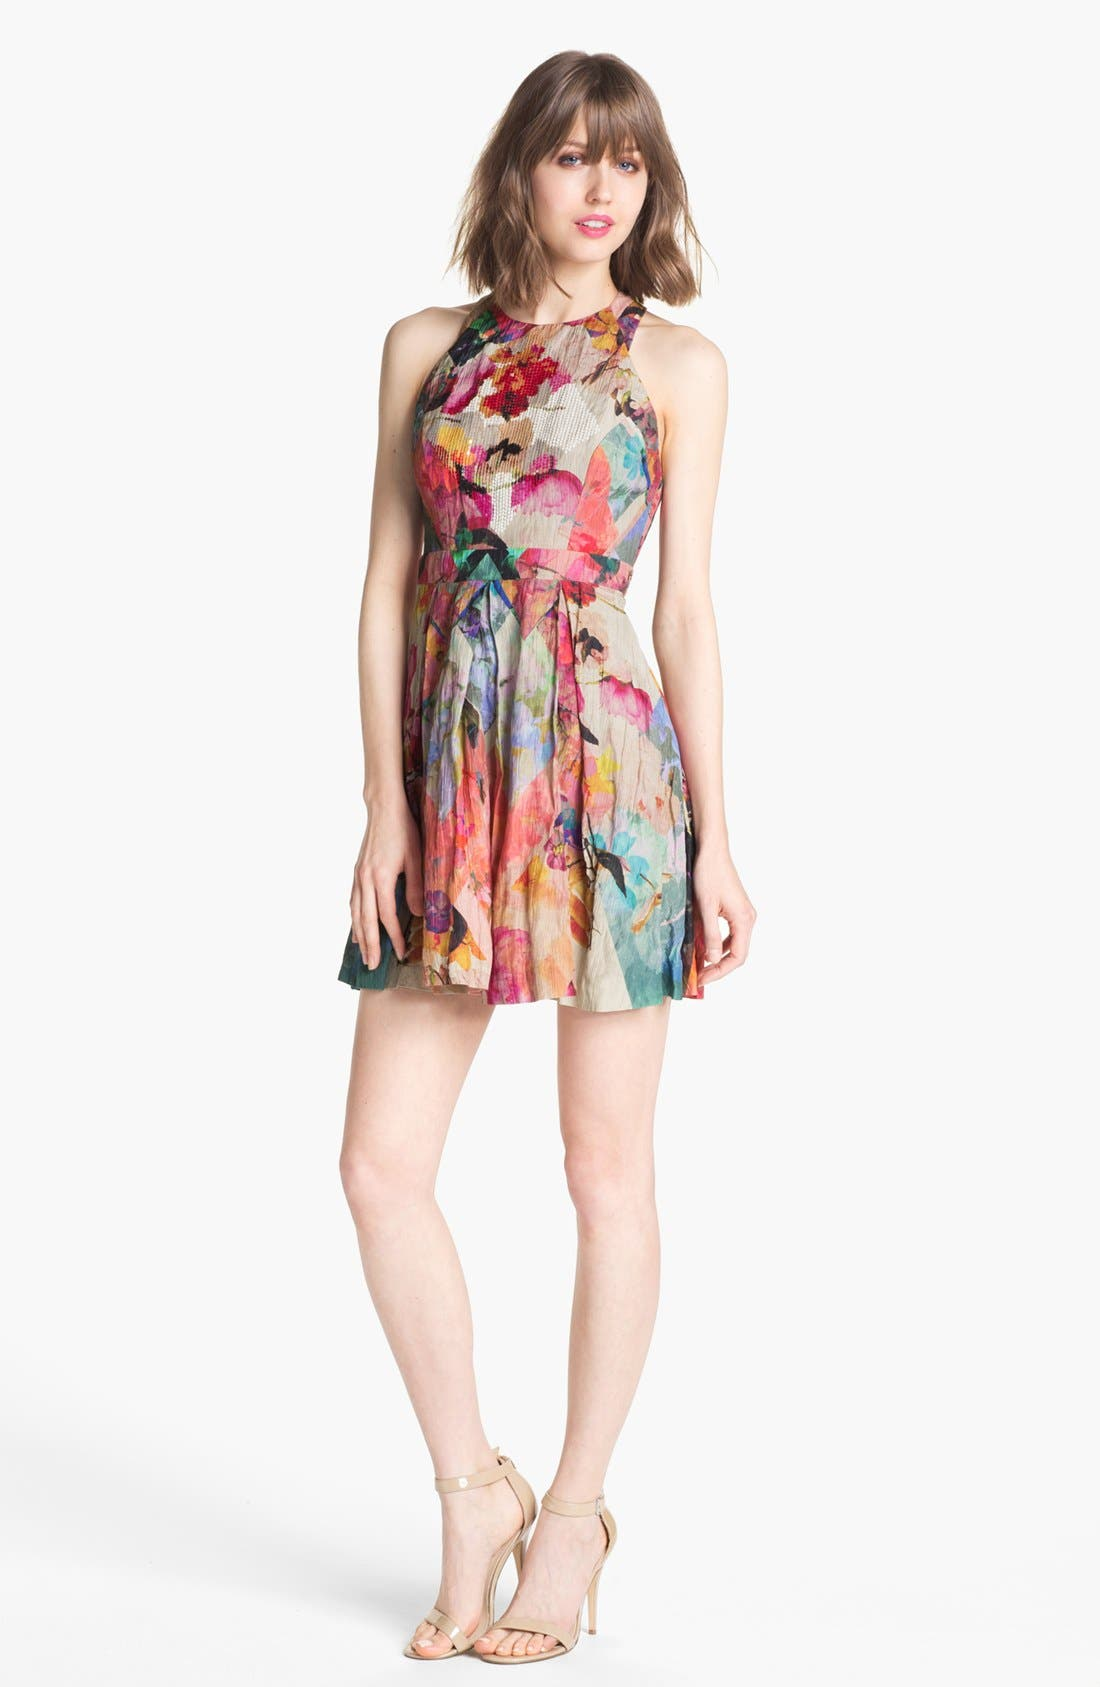 Alternate Image 1 Selected - Nicole Miller 'Blue Eden' Floral Print Fit & Flare Dress